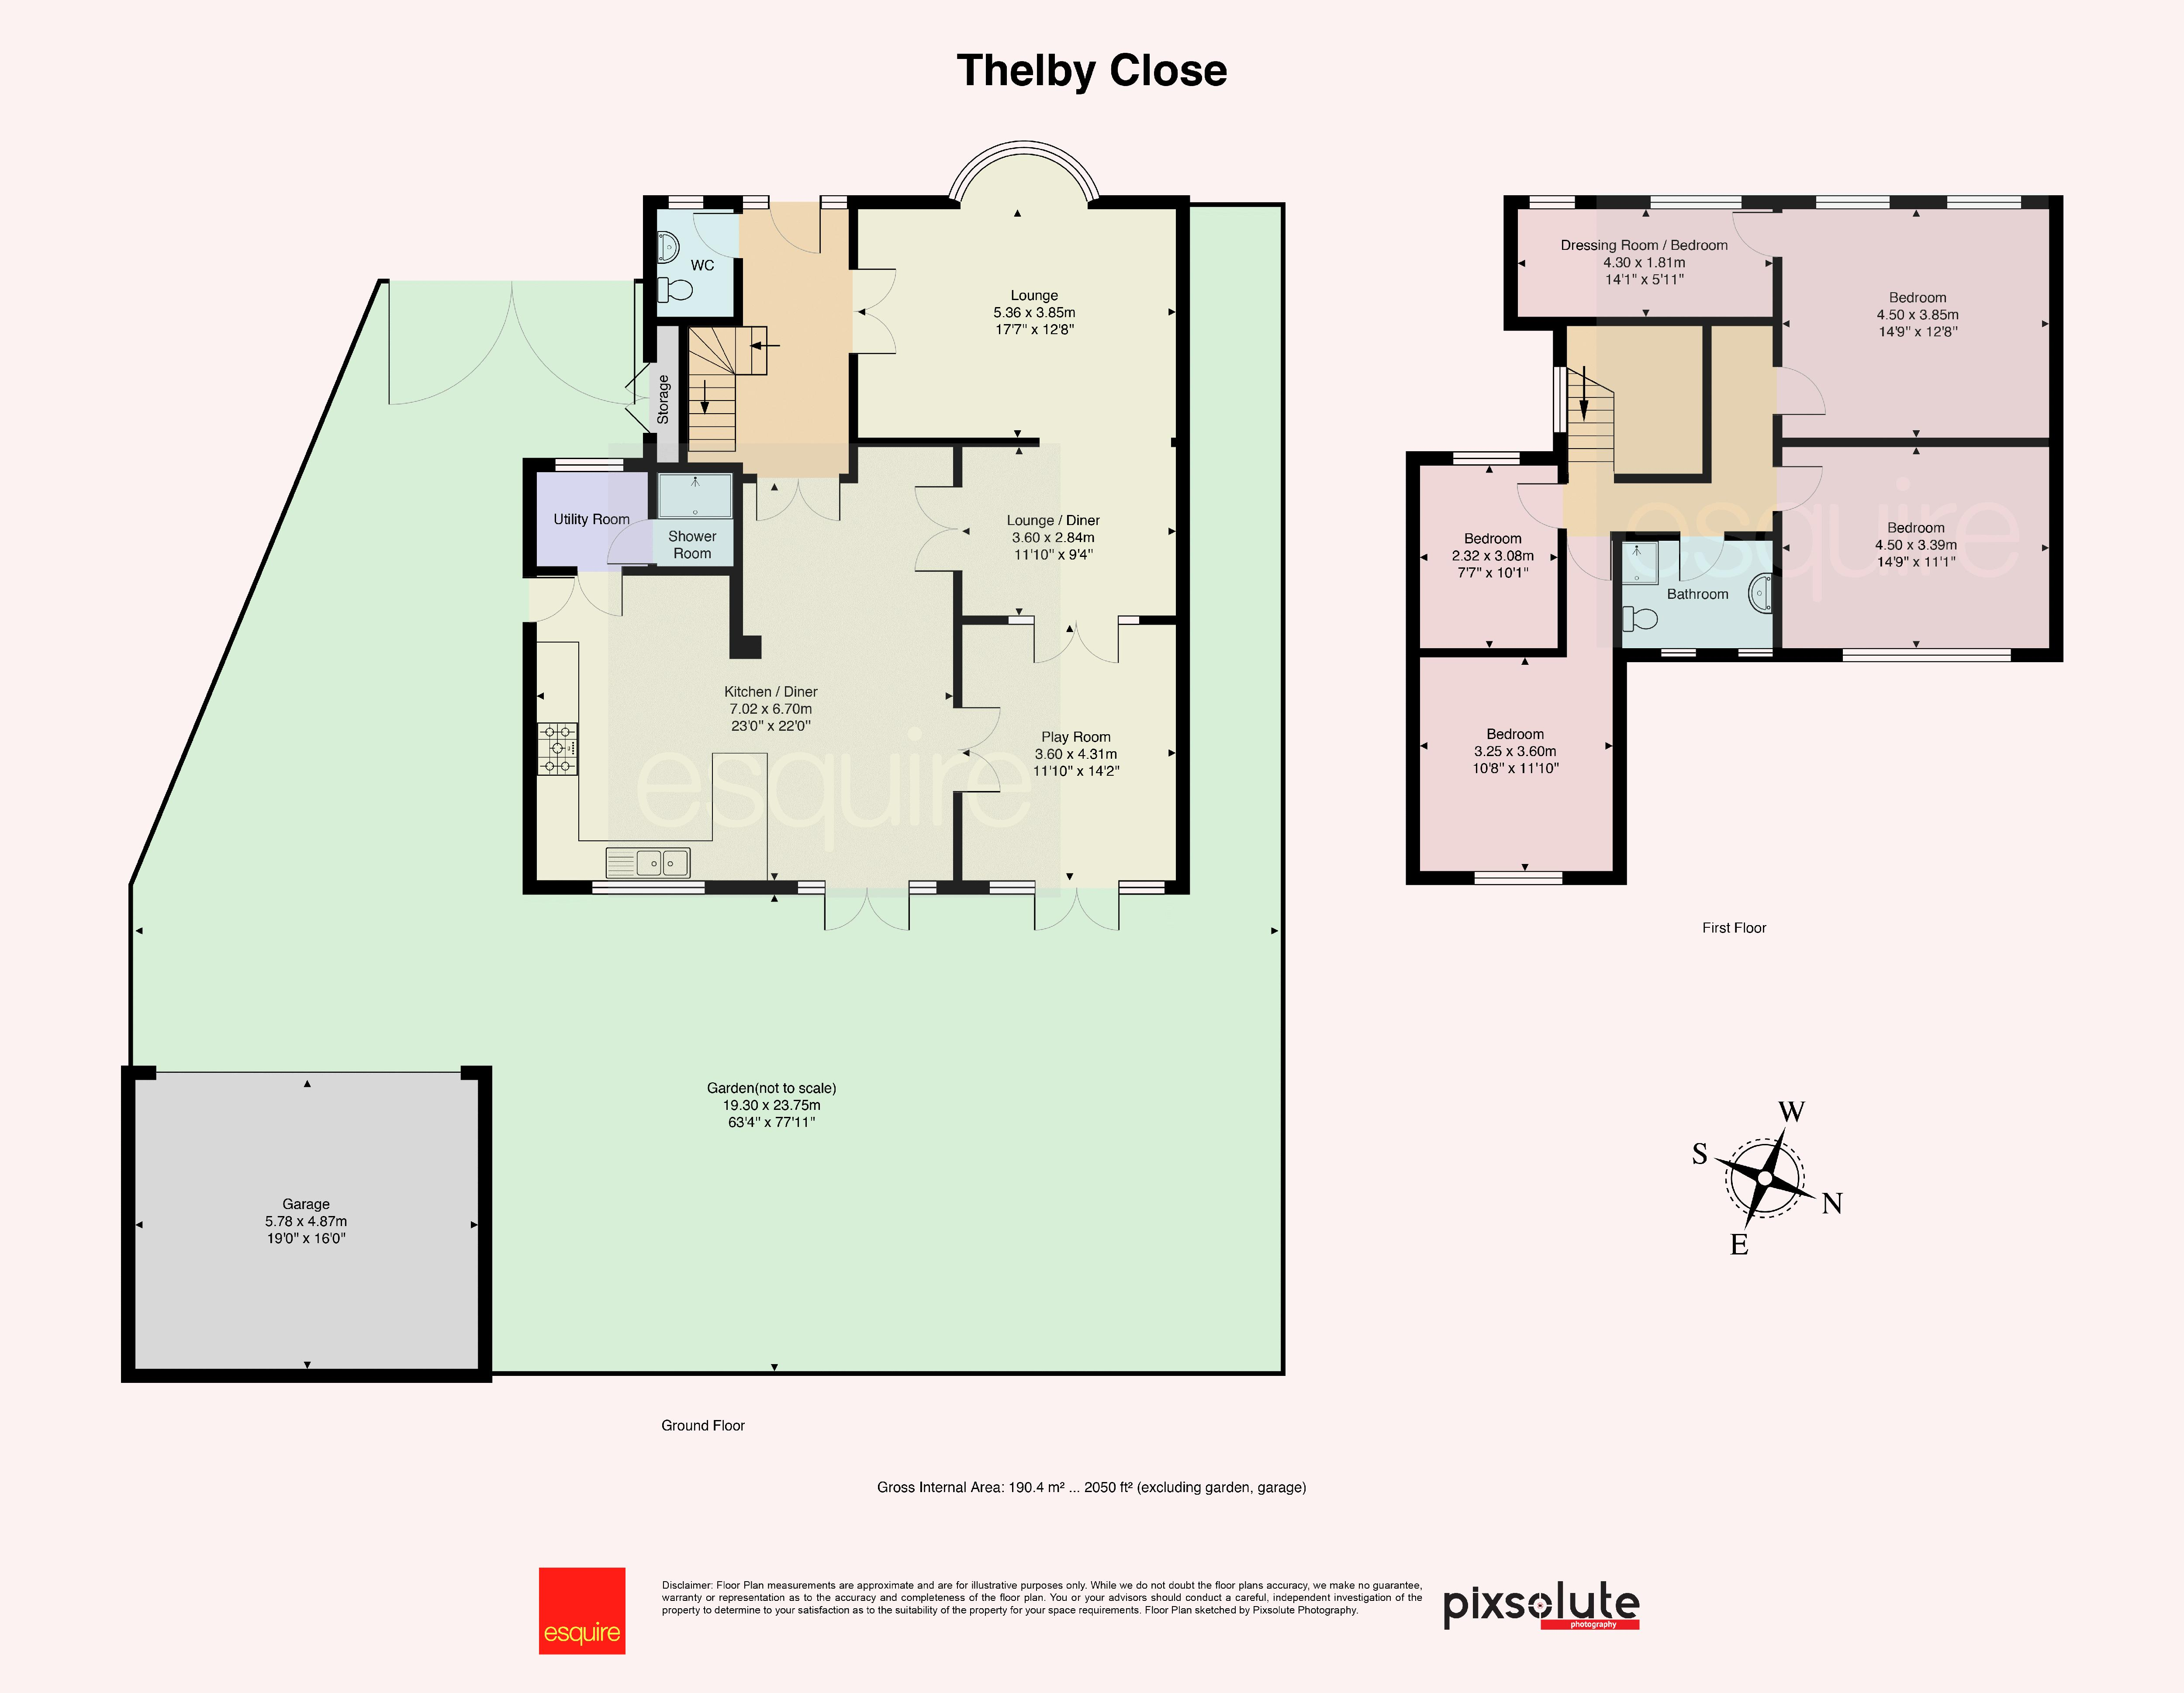 Thelby Close